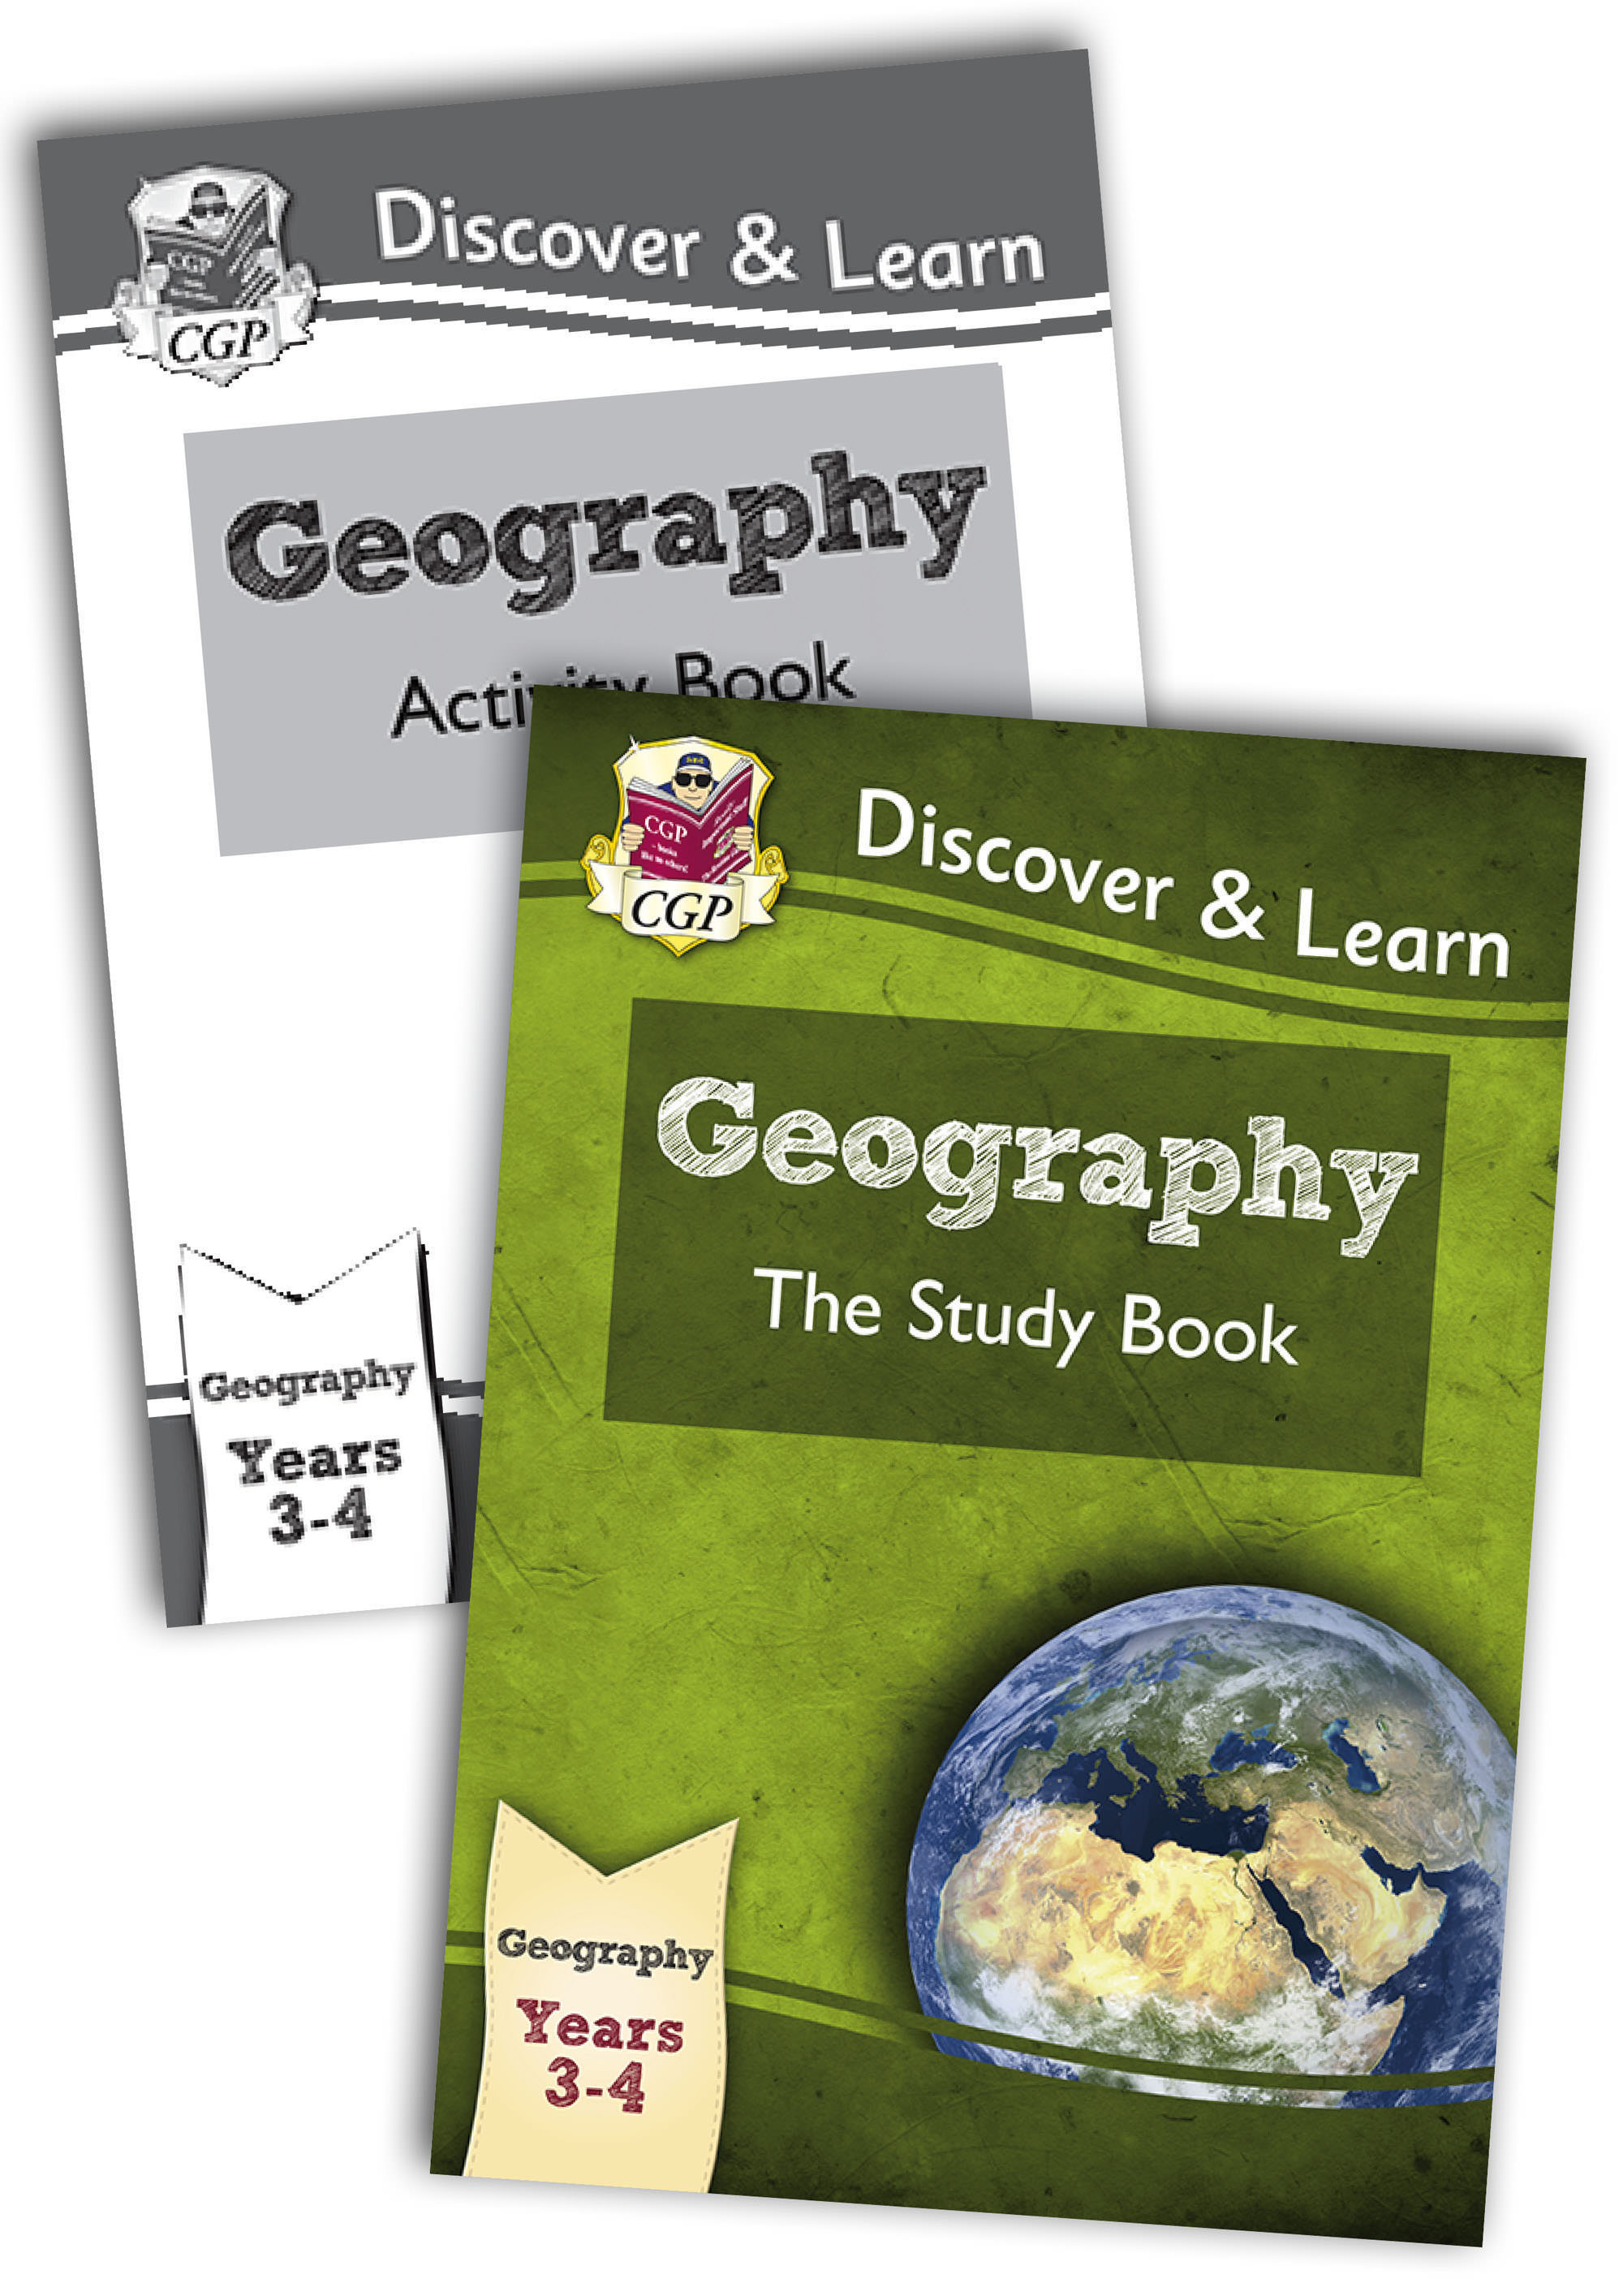 G1B21 - KS2 Discover & Learn: Geography Year 3 & 4 Bundle